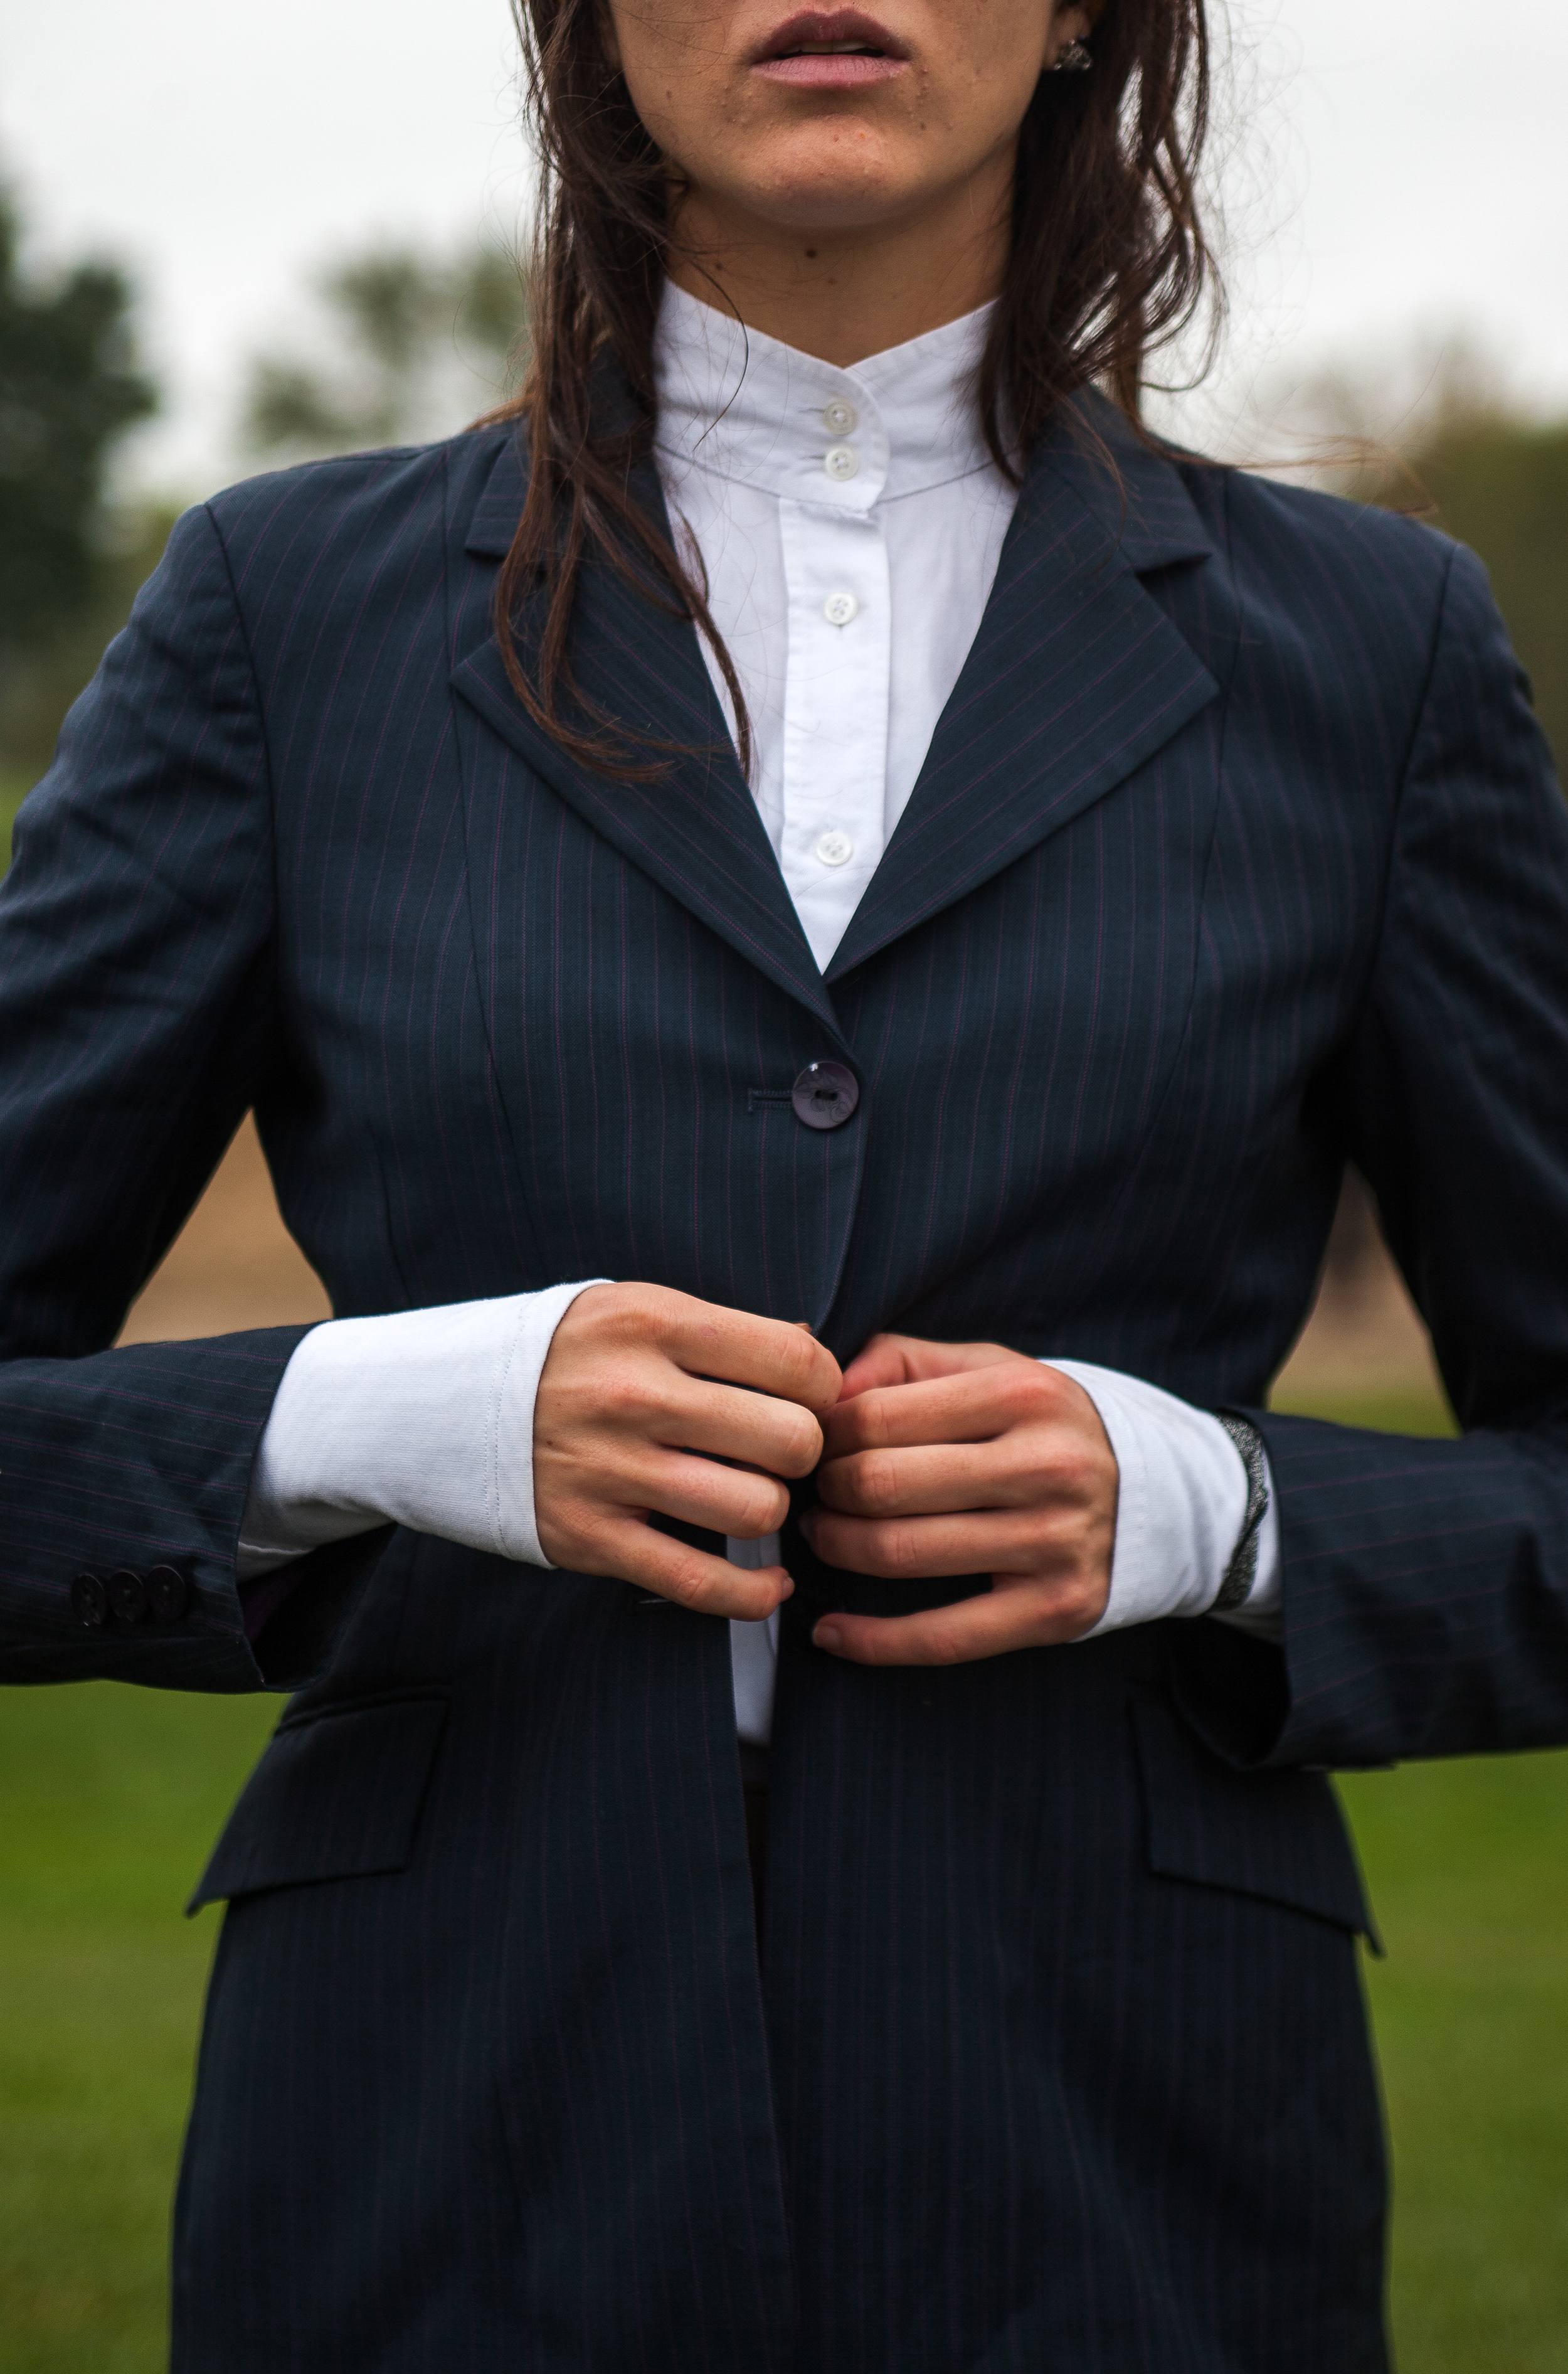 "Alyse Solomon, a junior and intermediate Hunt Seat rider for the Central Michigan University Equestrian club team, buttons up her show jacket as she gets dressed for her first show of the season at Woodbine Farms in Chelsea, Mich. on Sunday, Oct. 4, 2015. Hunt Seat is a style of forward seat riding. ""You use your core muscles as well as leg muscles no other sport targets,"" said Solomon."